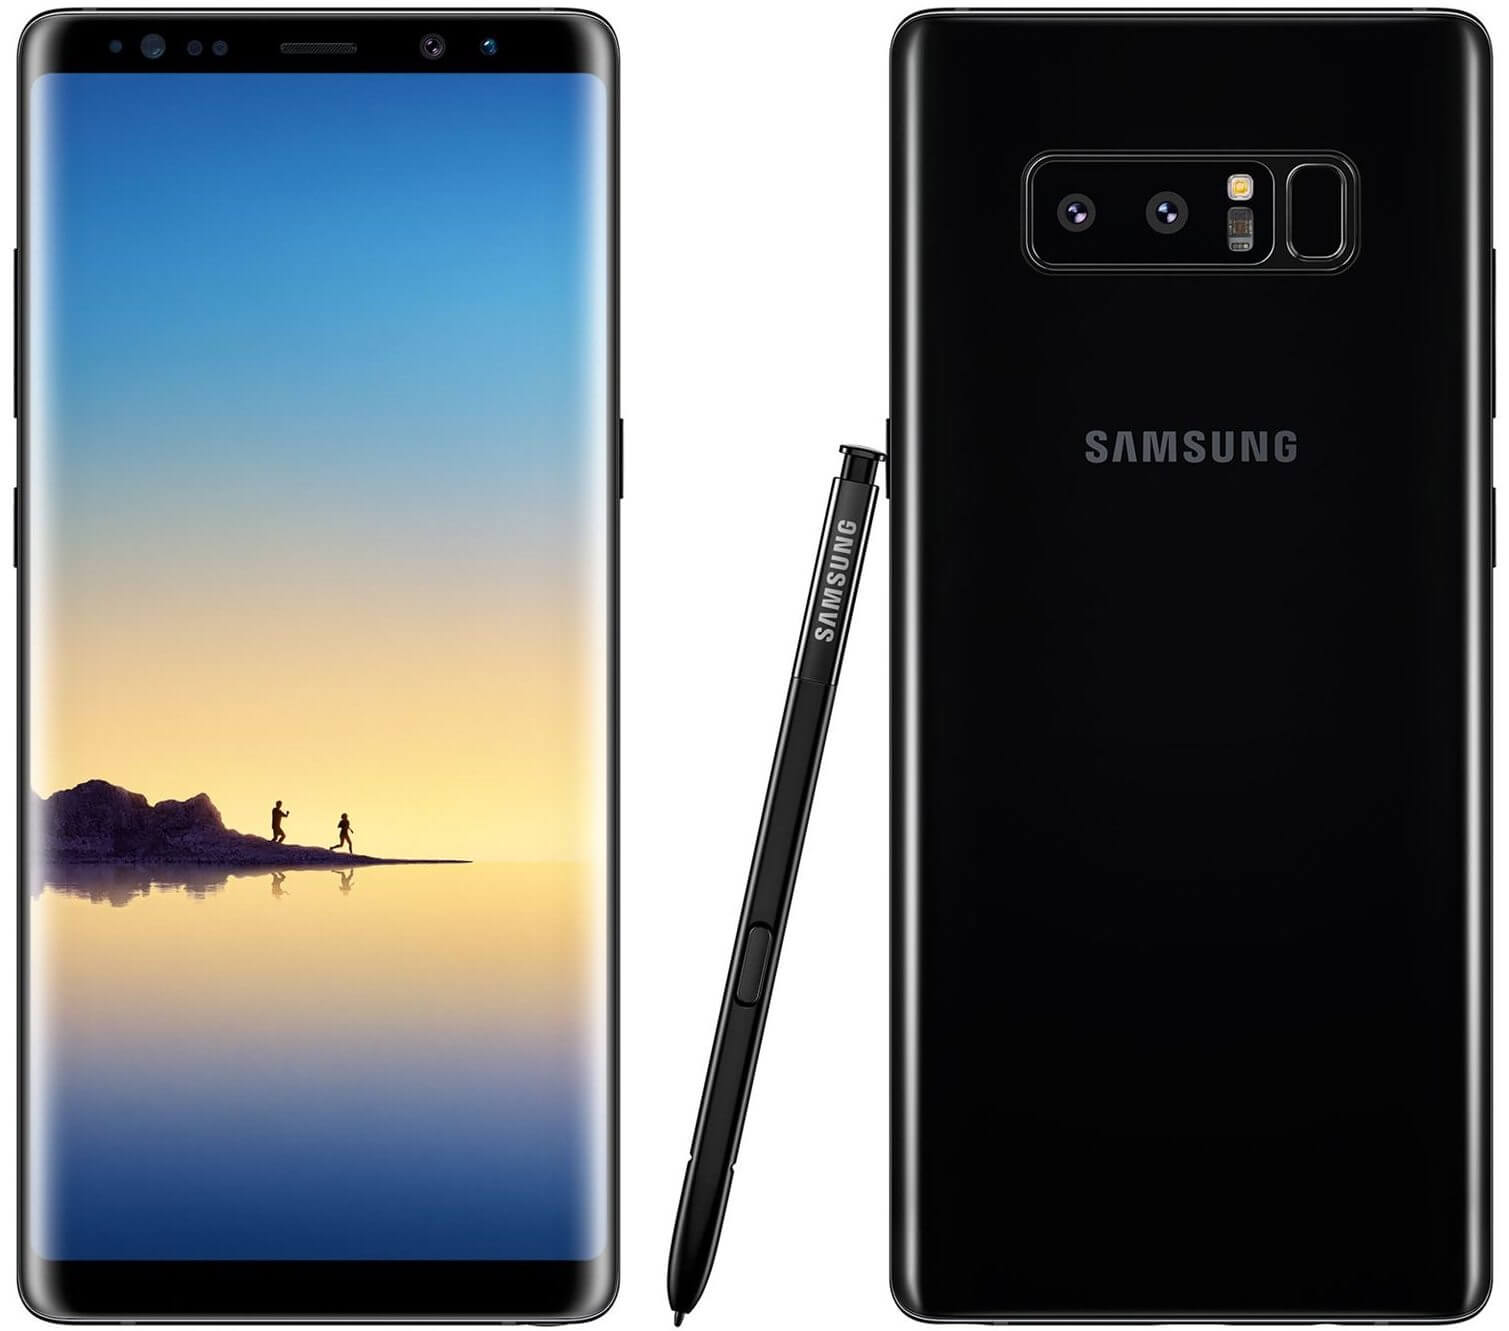 0019829 samsung galaxy note 8 free original gift pack worth rm200 - Devo fazer o upgrade para o Galaxy S9?